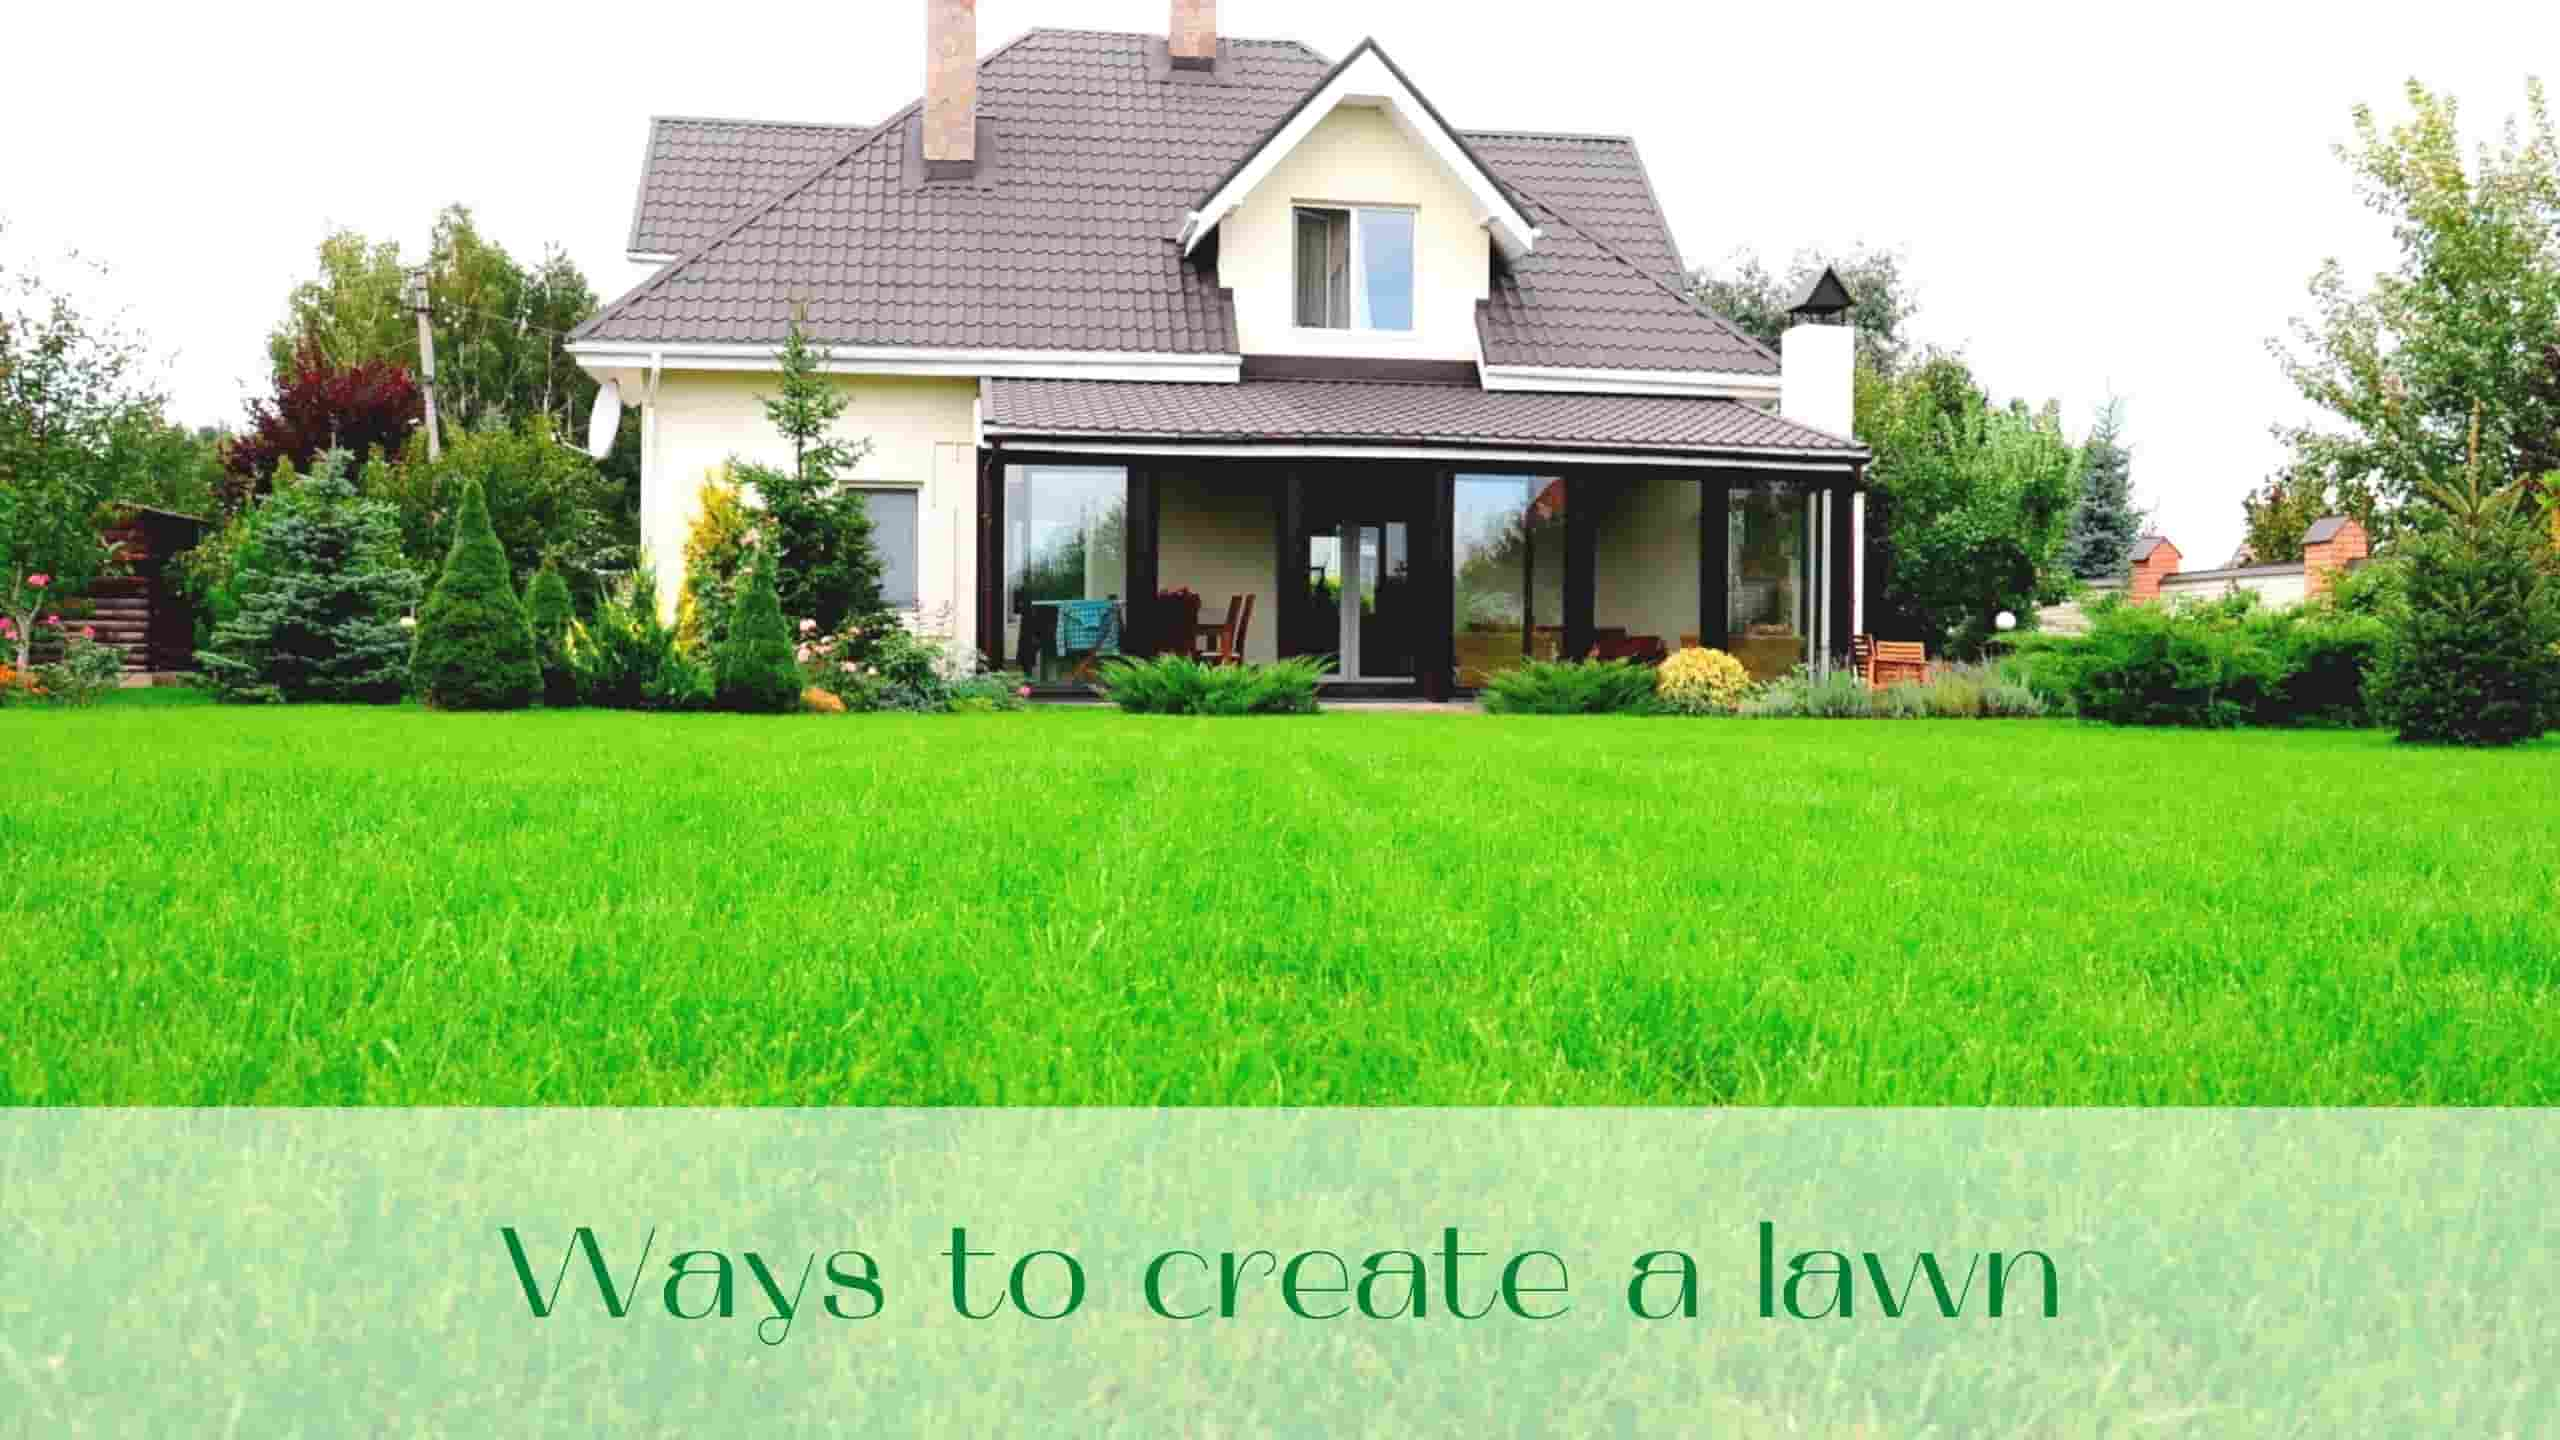 image-Ways-to-create-a-lawn-in-Ontario